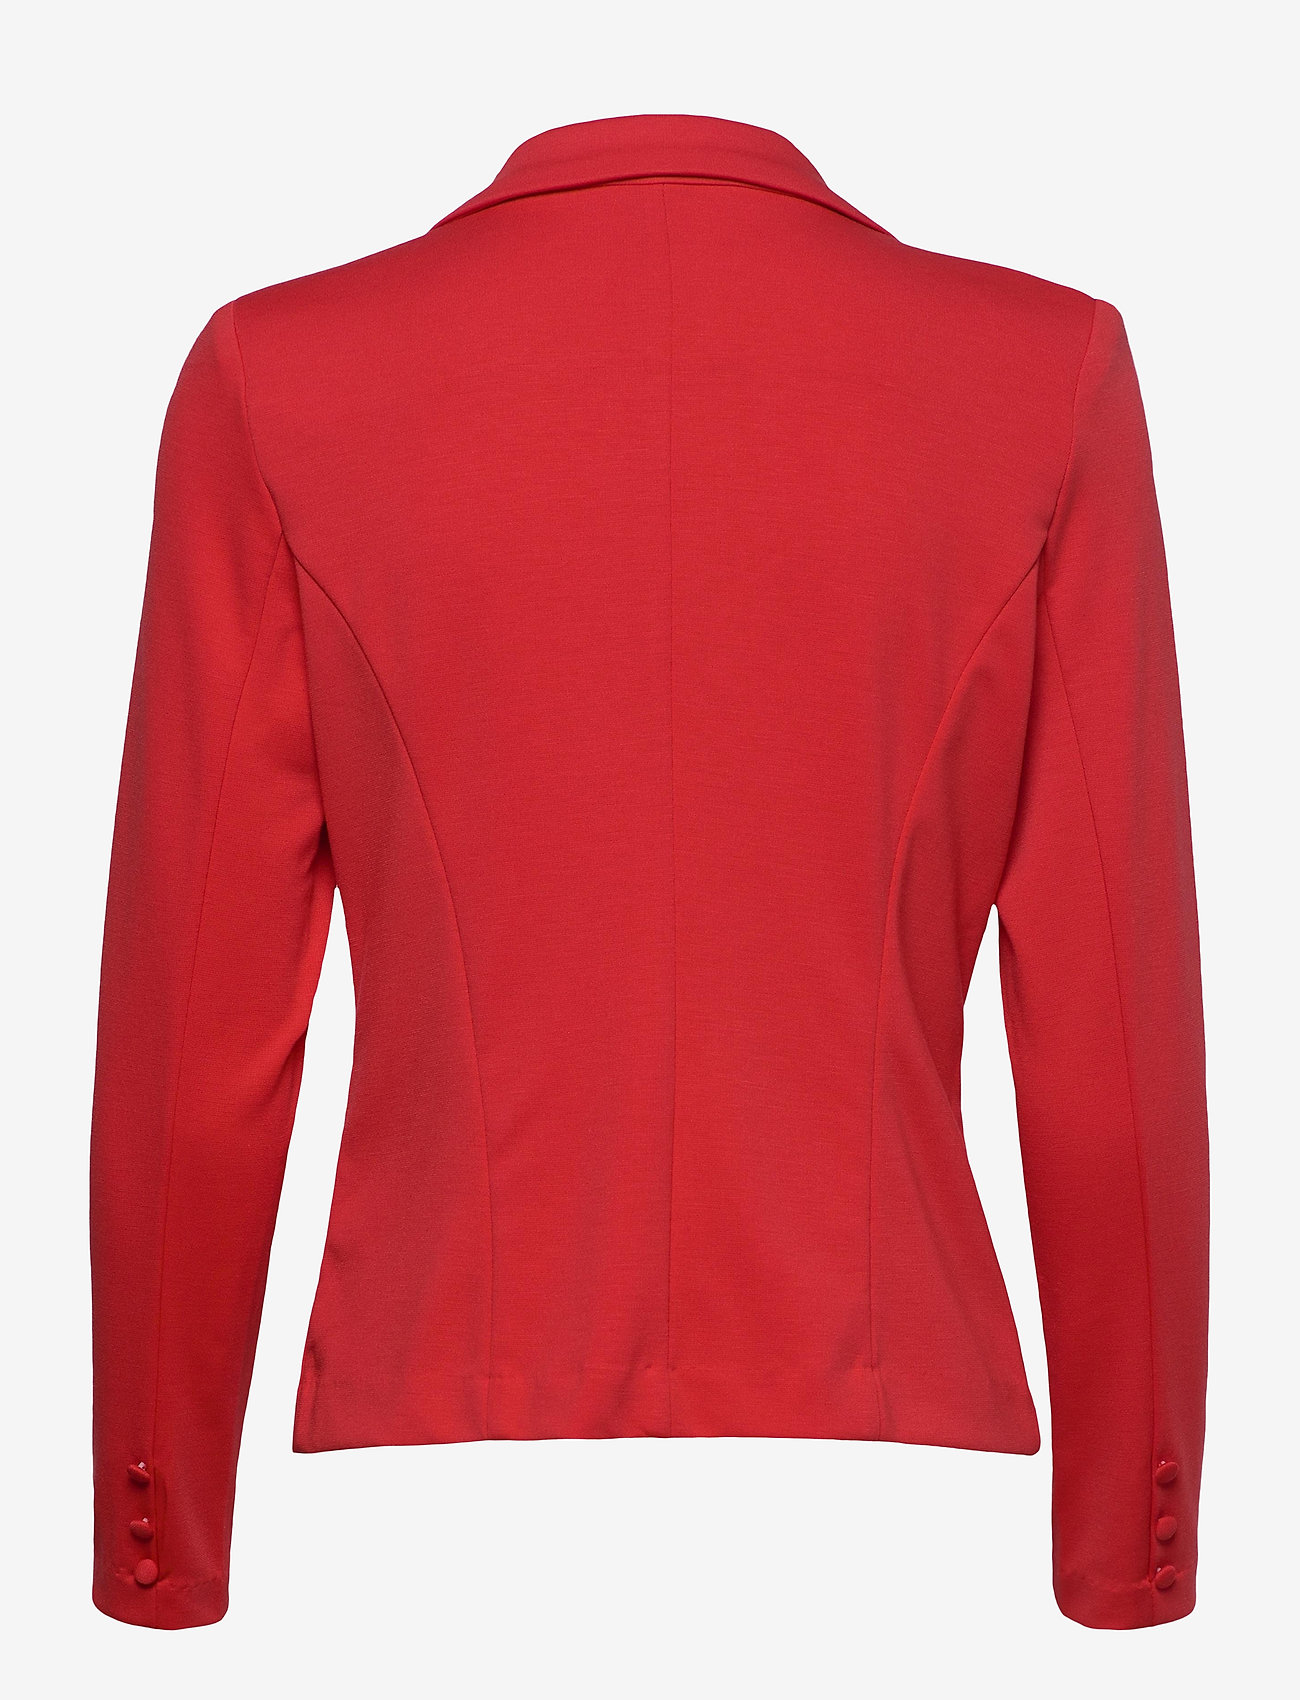 FREE/QUENT - FQNANNI-JA - casual blazers - poppy red - 1